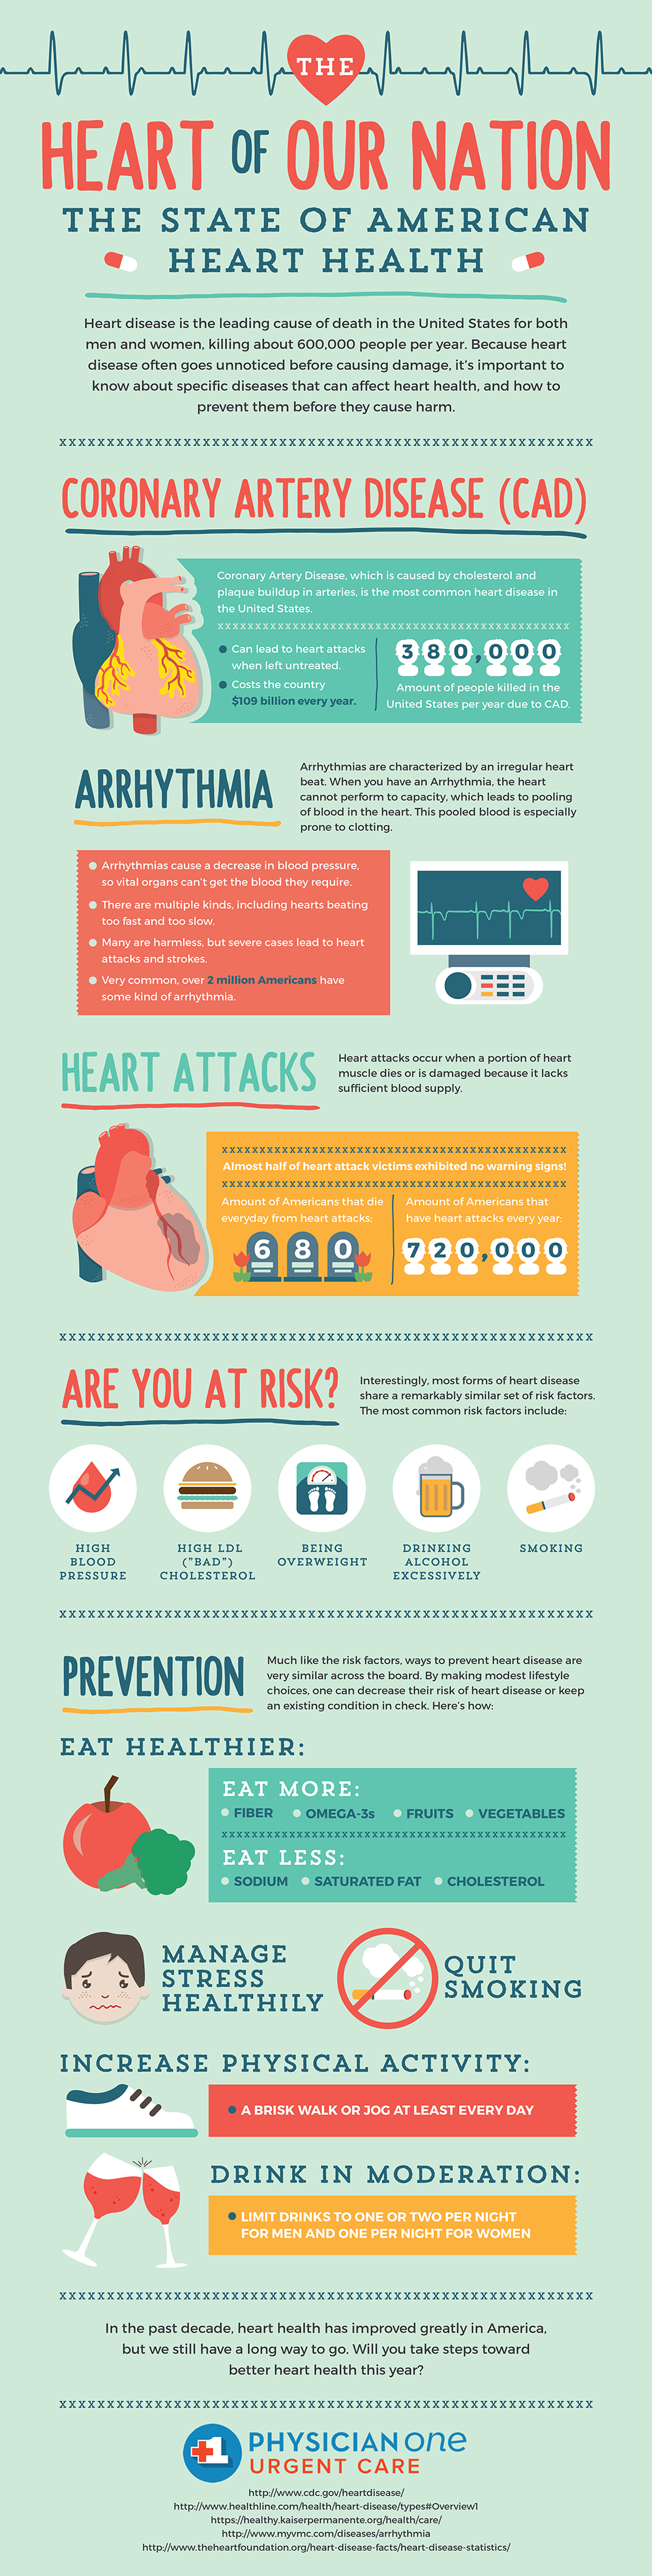 Heart of our Nation: The State of American Heart Health